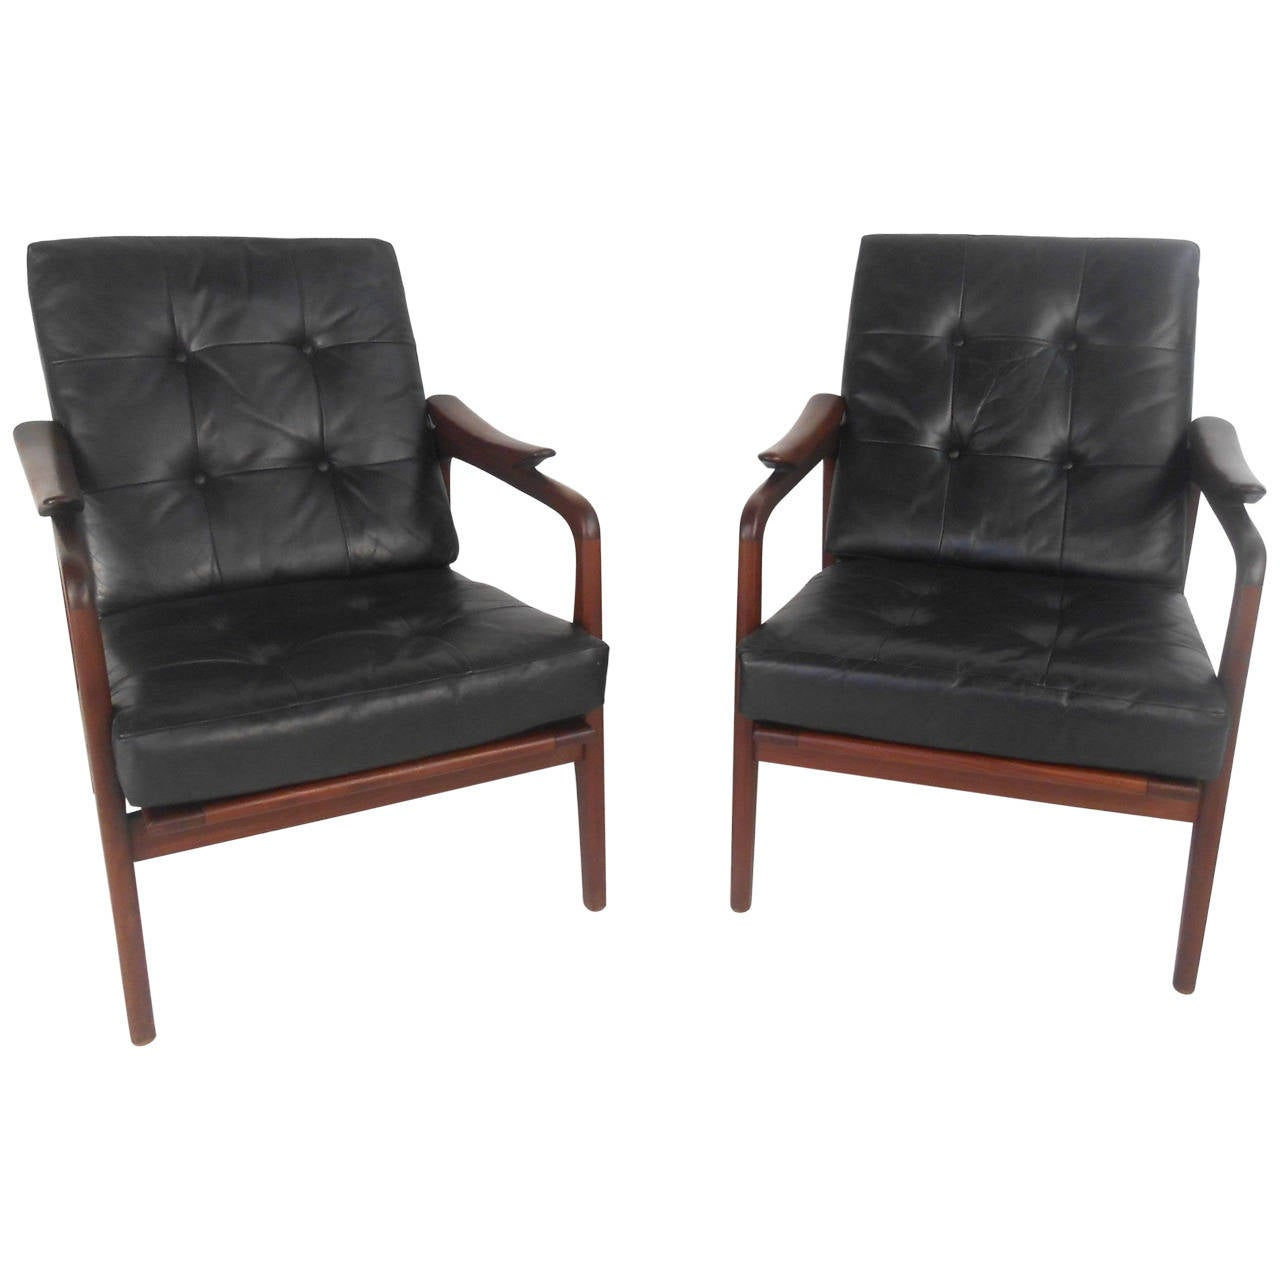 Modern Lounge Chairs Pair Beautiful Mid Century Modern Leather Lounge Chairs At